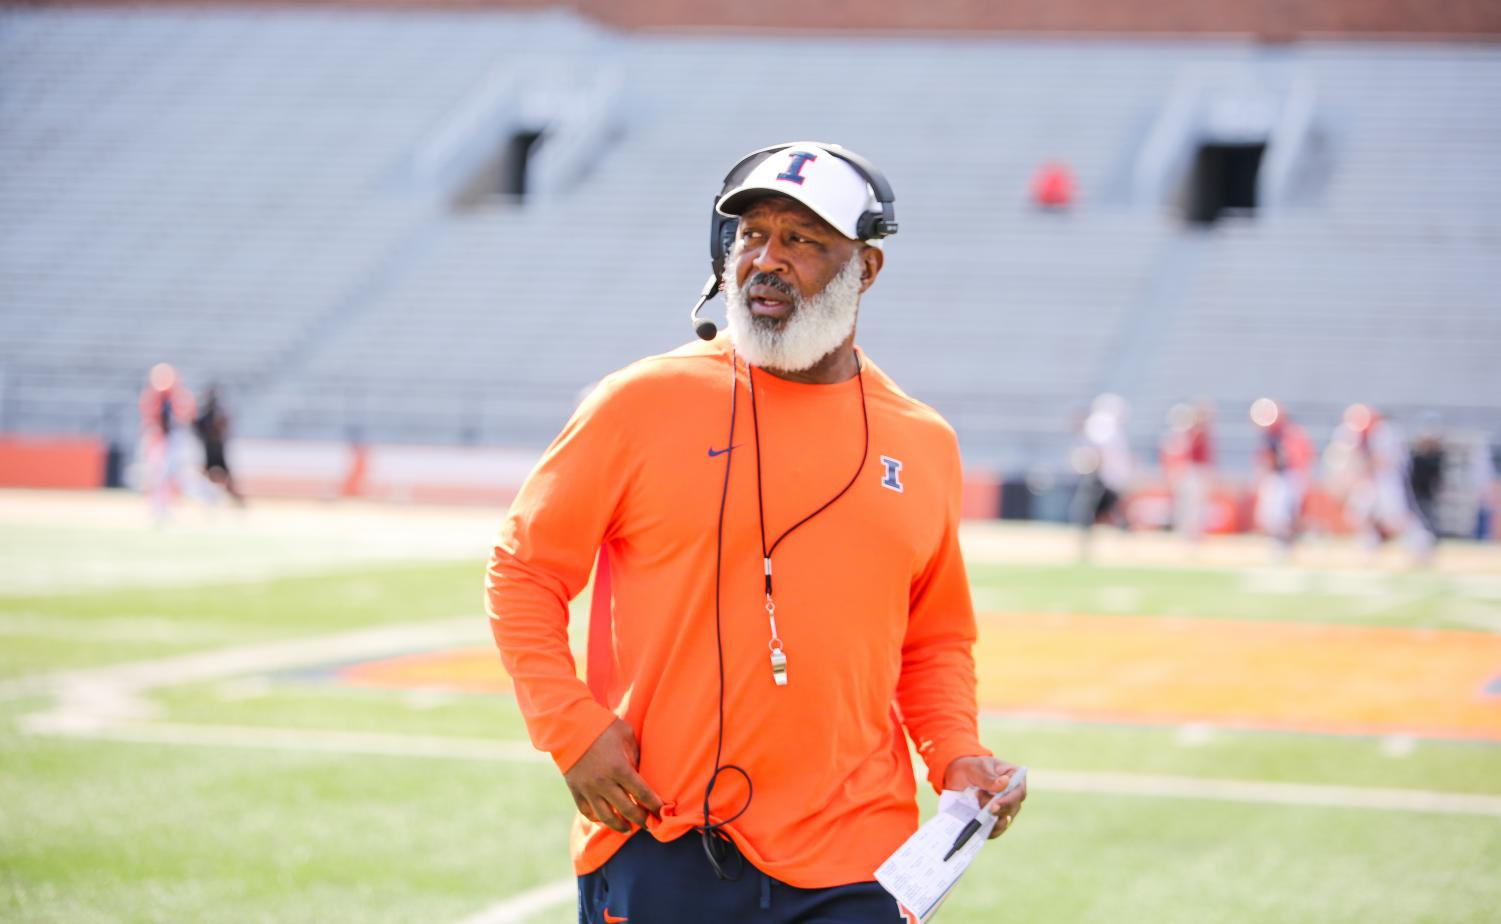 Lovie Smith coaches at the Illini football spring open practice on Saturday. He brought back staff member Mike Bellamy to fulfill a new role.